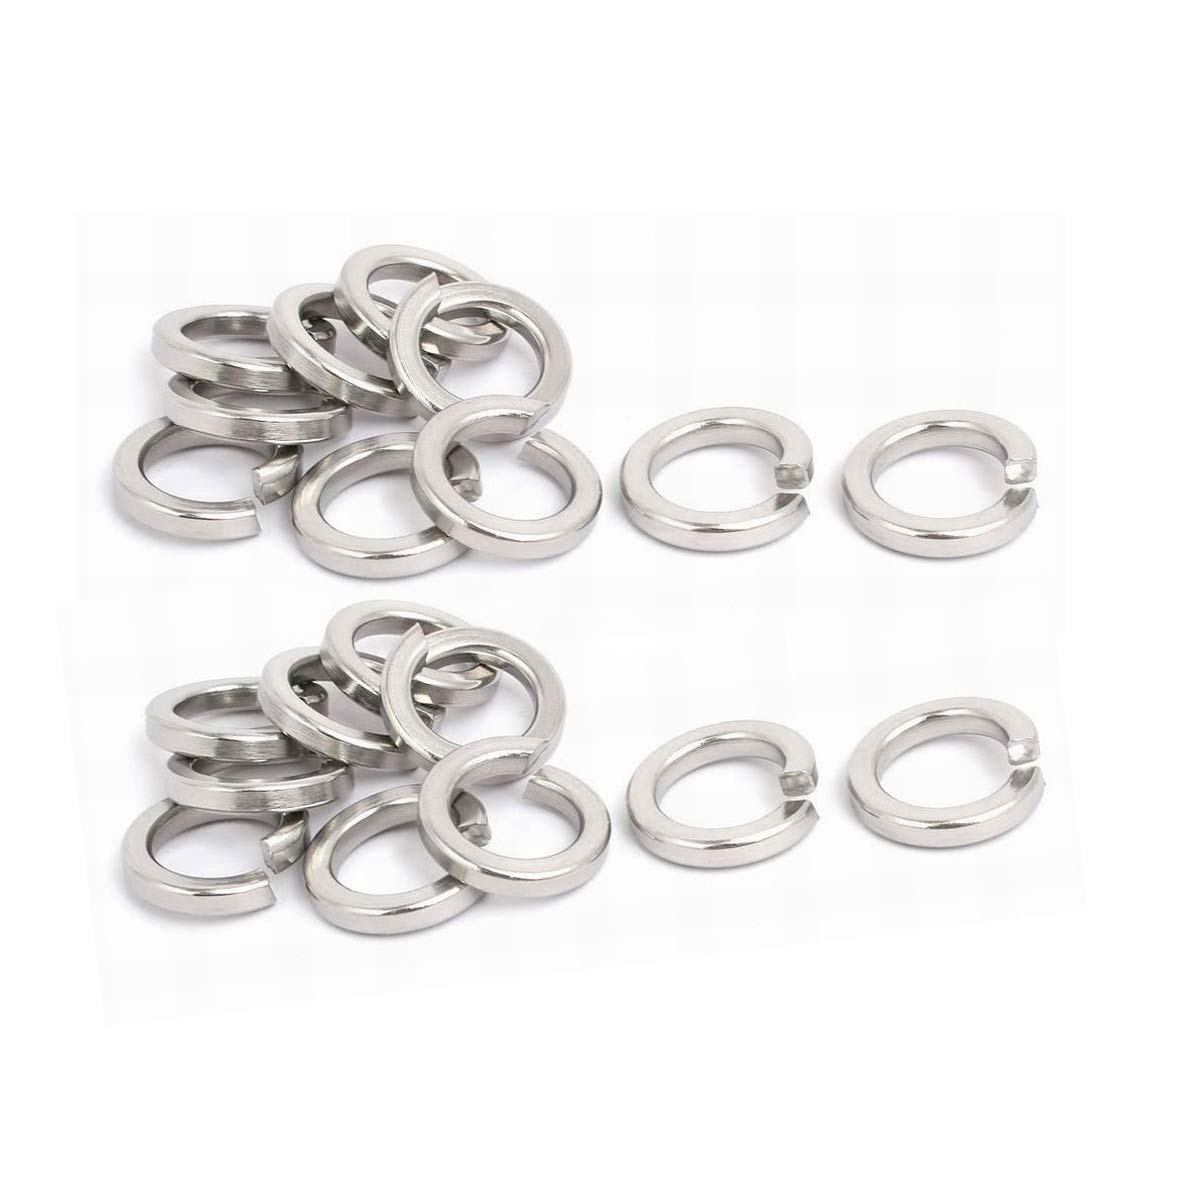 M5 Stainless Flat Spring Lock Washers, 18-8 (304) Stainless Steel, 0.2'ID,100Pack (M5) 0.2ID, 100Pack (M5) ZLYY